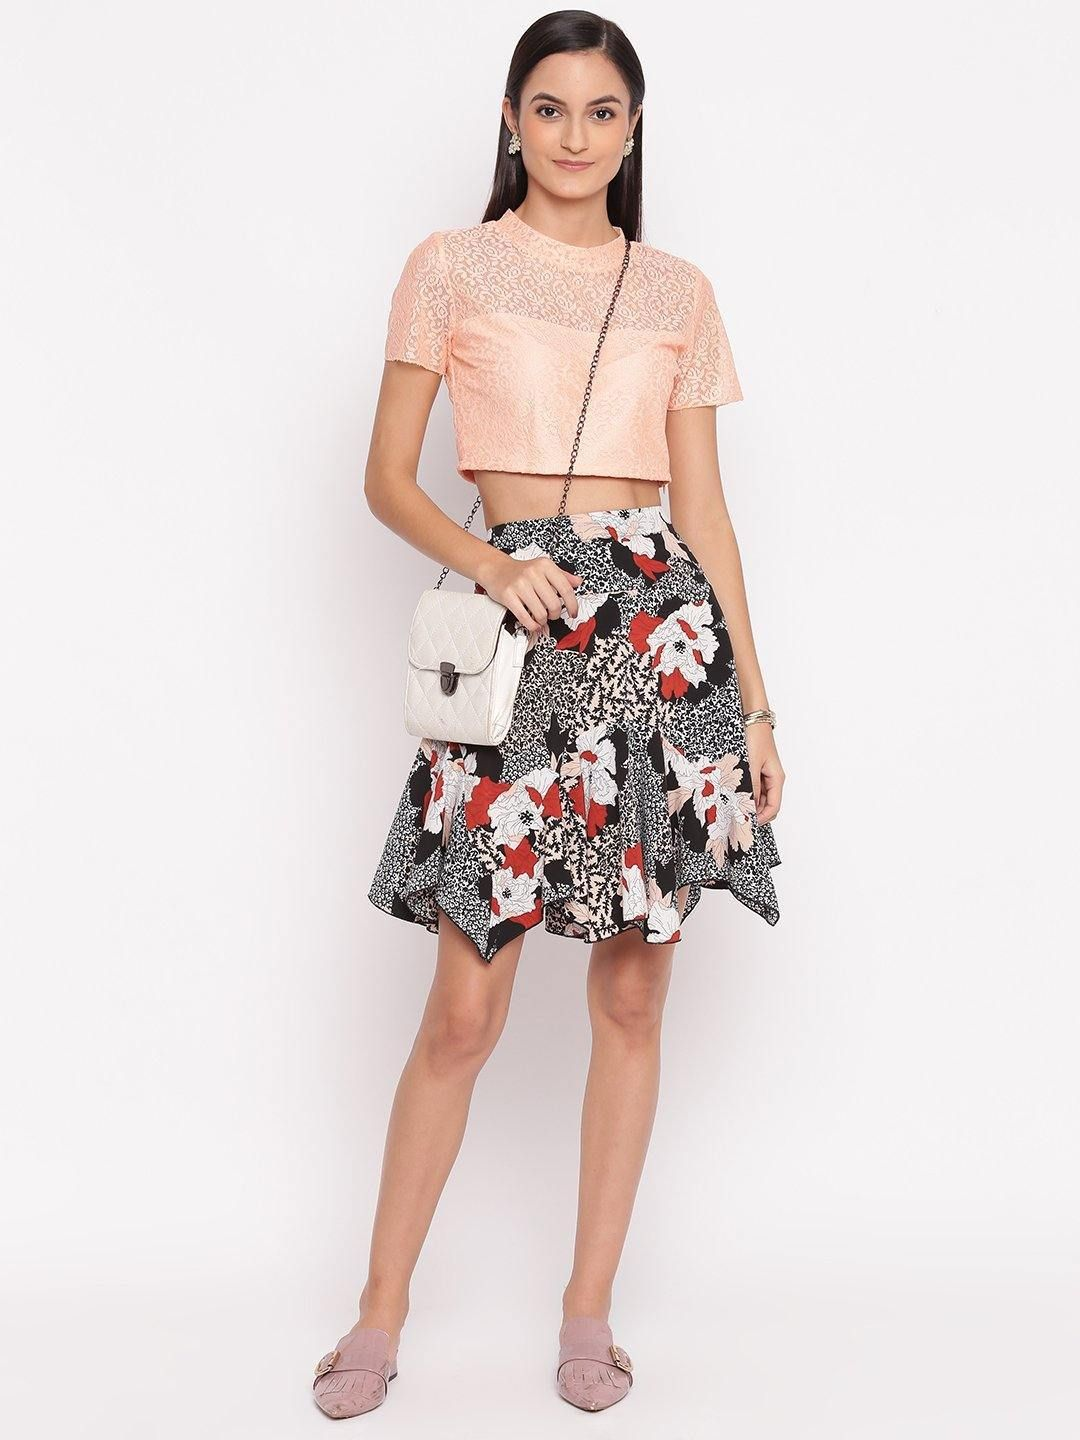 Floral Print Short Skirt - Trendy Divva